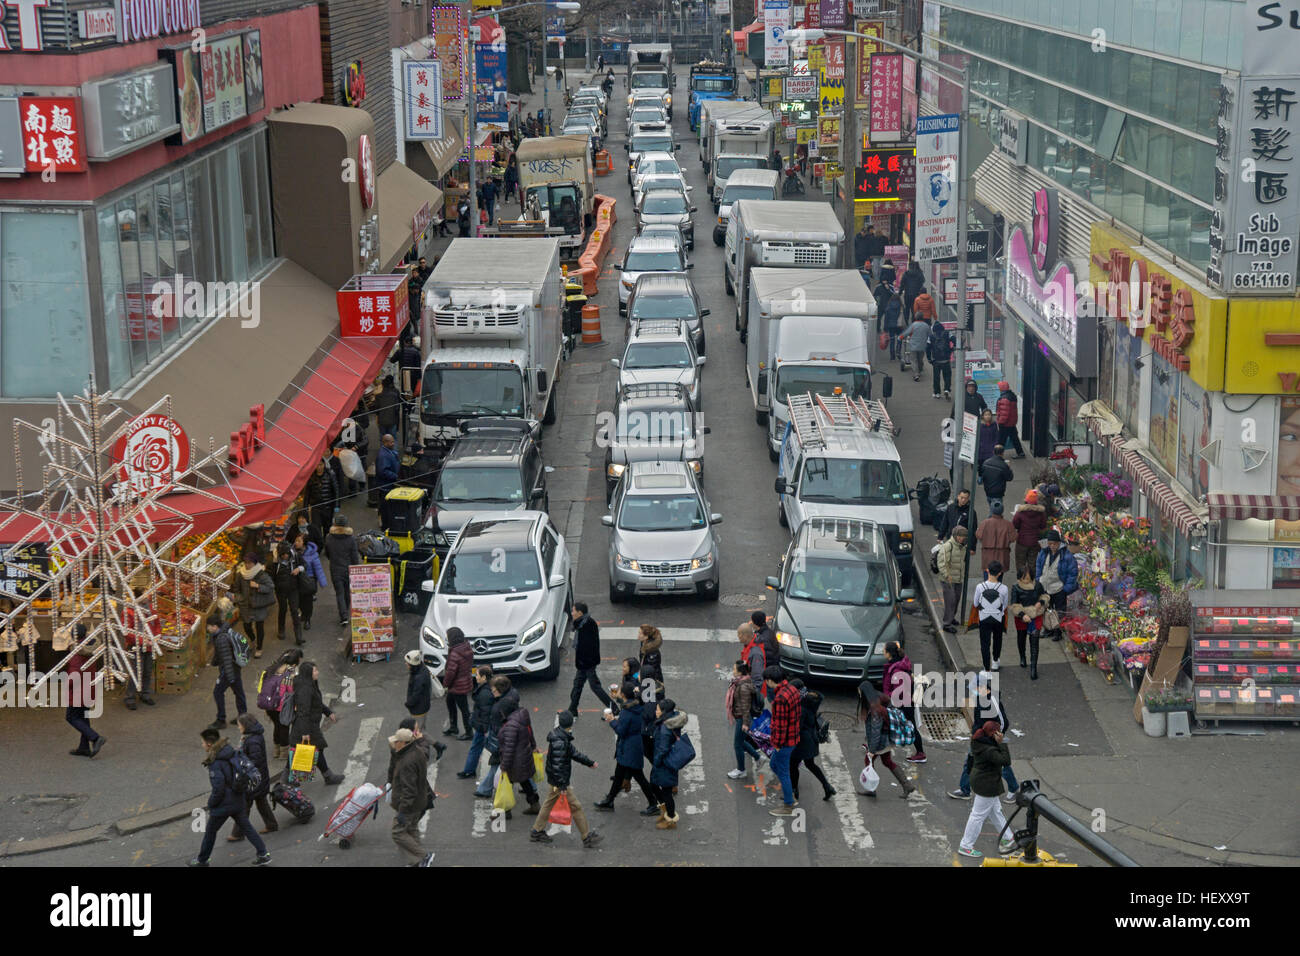 Intersection of the busy intersection of Main Street and 40th road in Chinatown, downtown Flushing, New York City - Stock Image